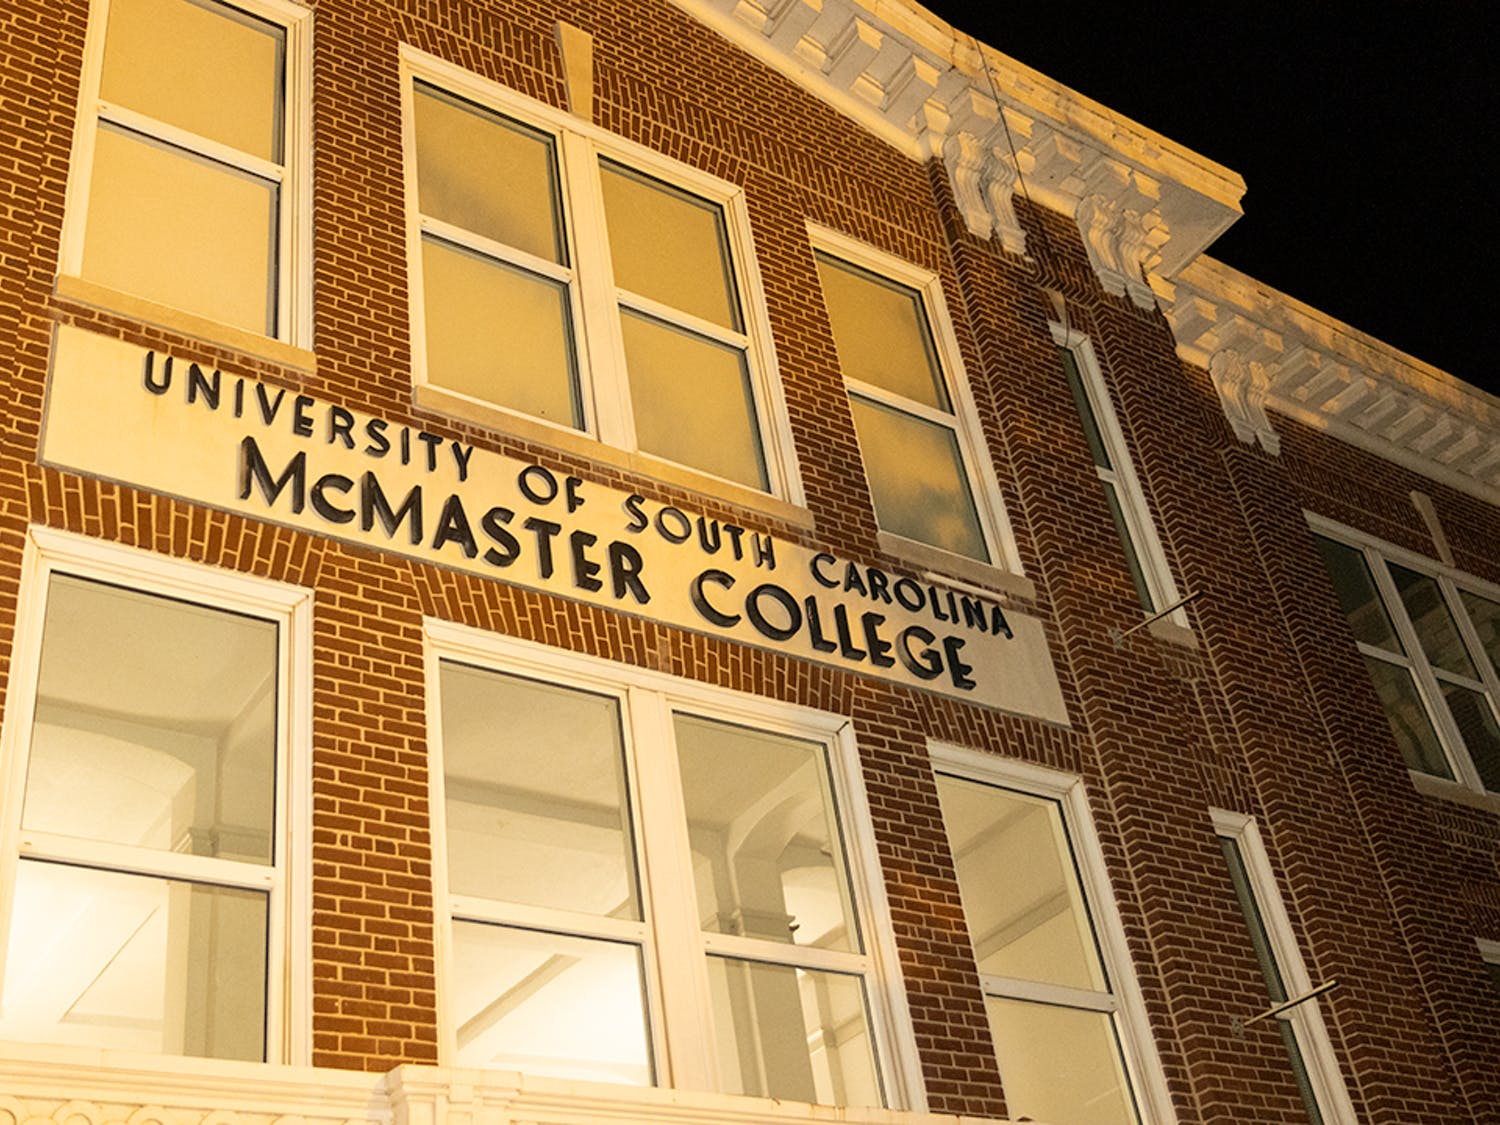 The front of McMaster College, home to the School of Visual Art and Design. The building is located on the corner of Pickens Street and Senate Street.